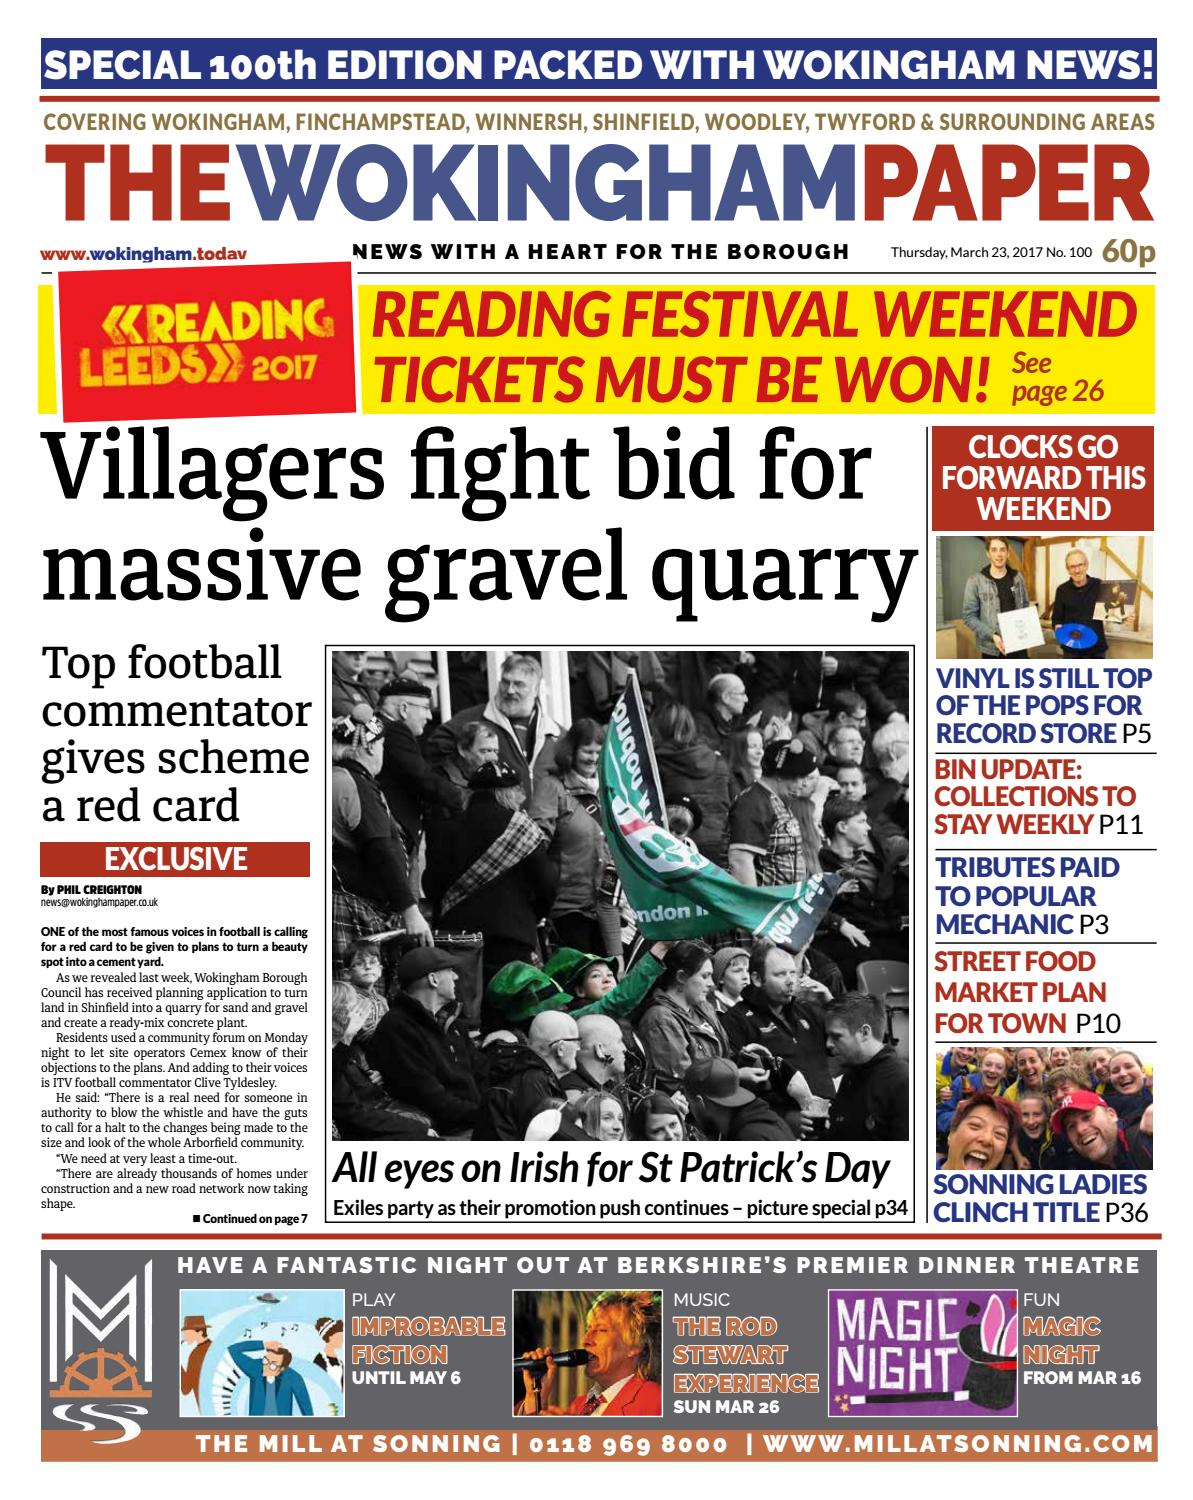 The Wokingham Paper March 23, 2017 by The Wokingham Paper - issuu